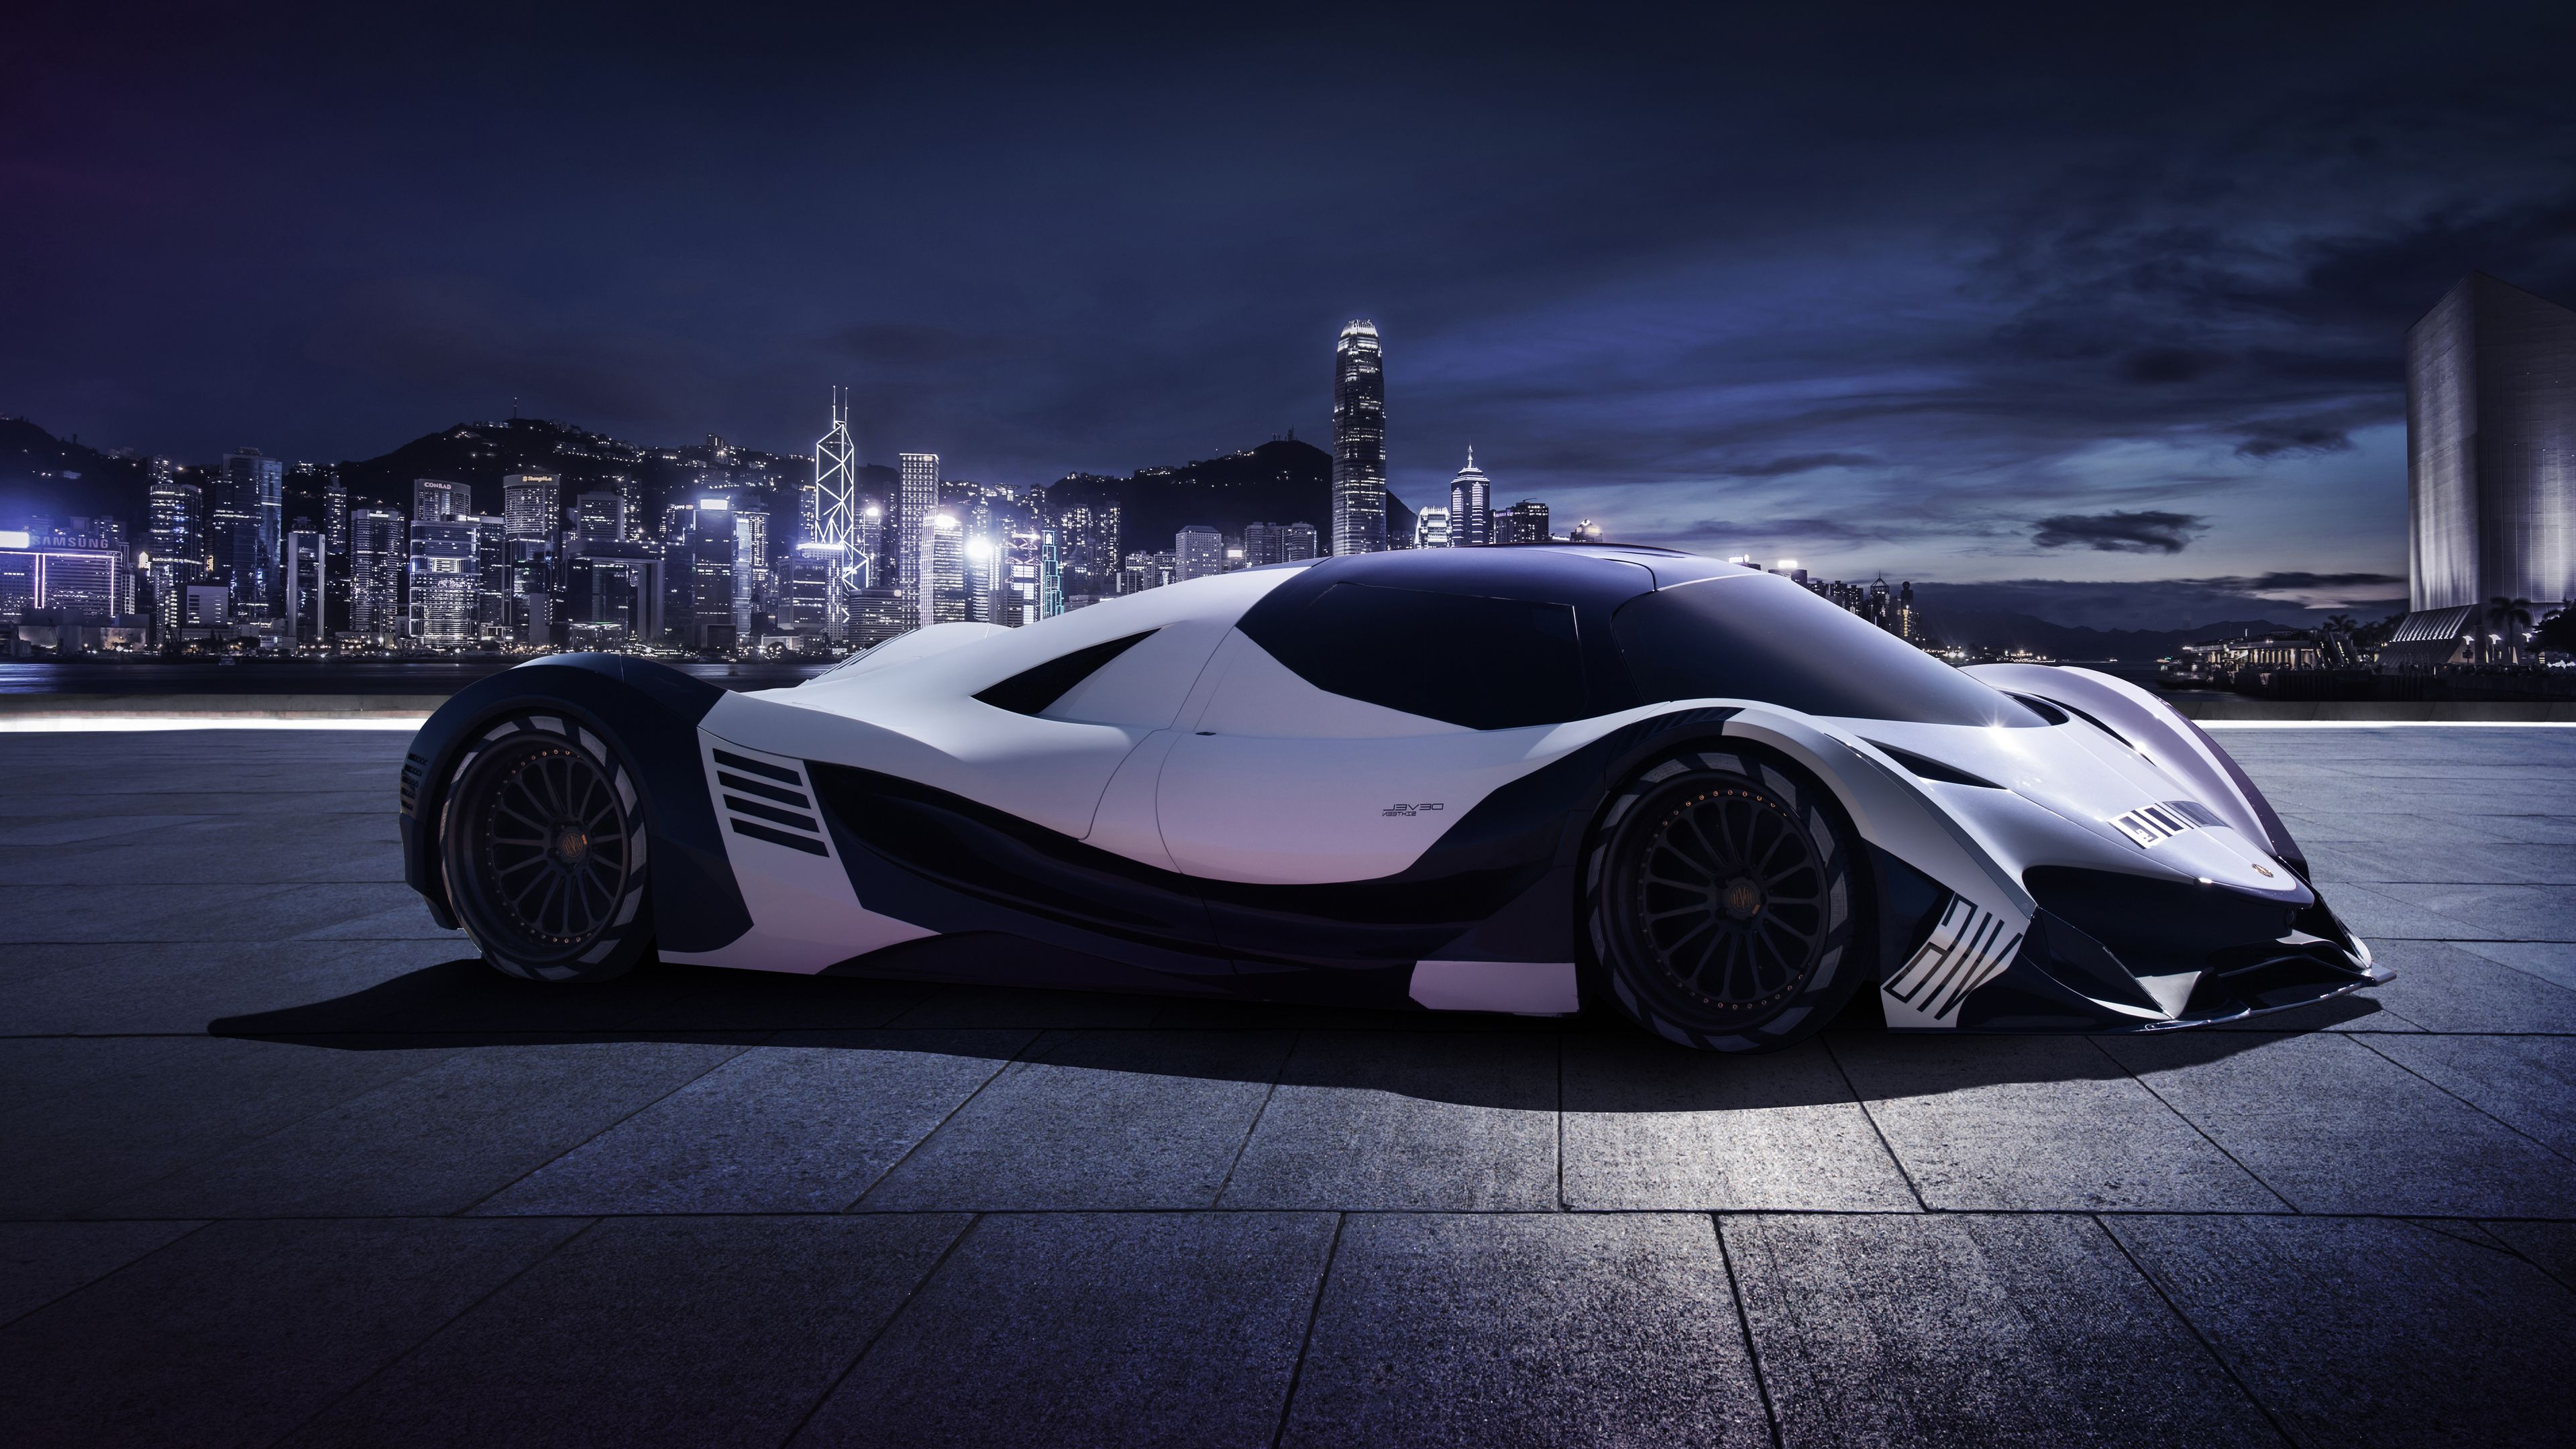 Wallpaper 4k Devel Sixteen 2019 4k 2019 Cars Wallpapers 4k